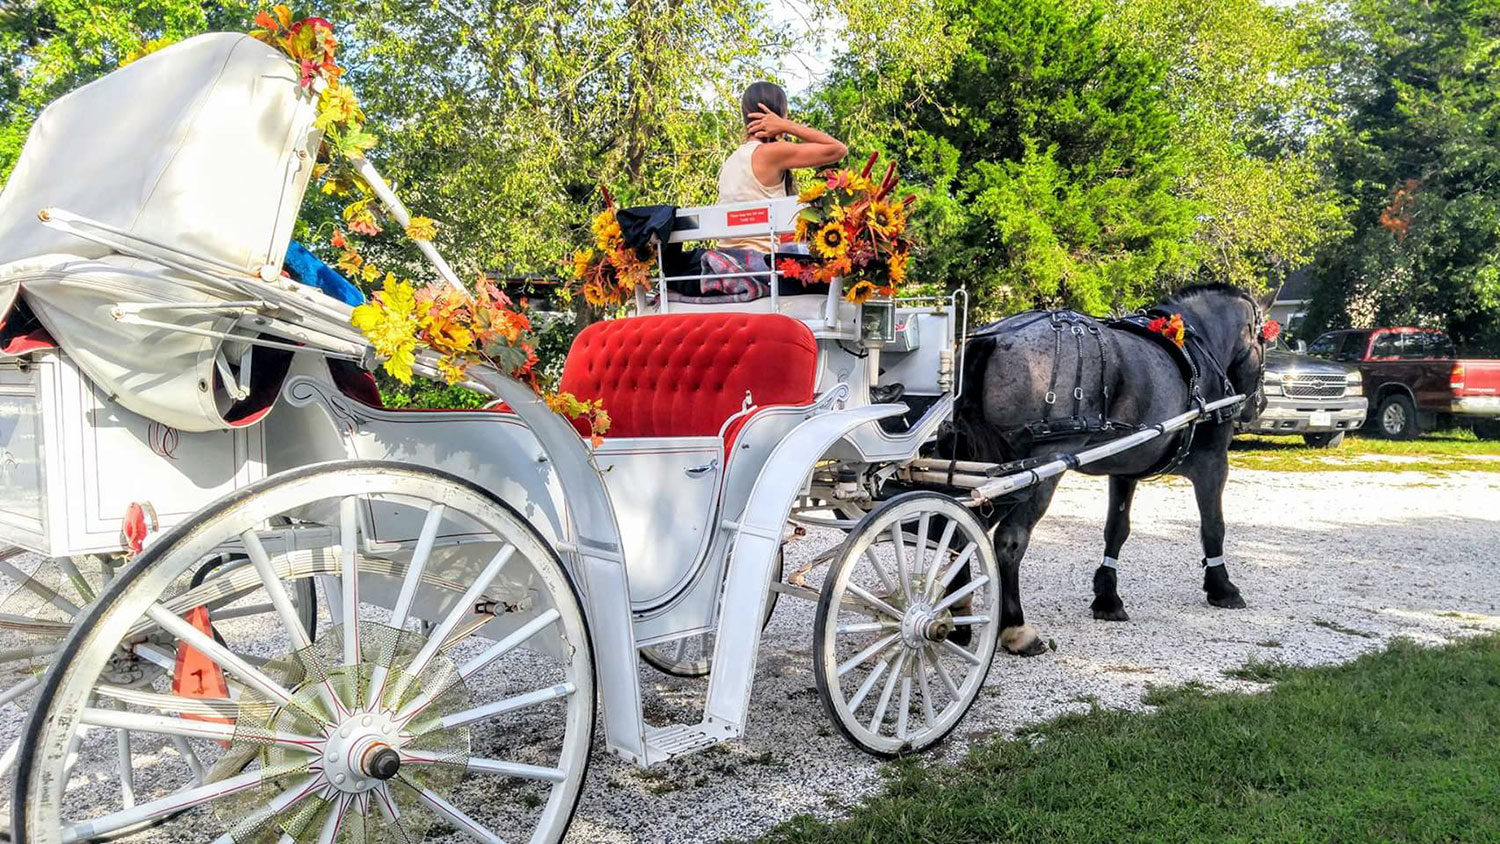 Carriage rides of historic Cape May